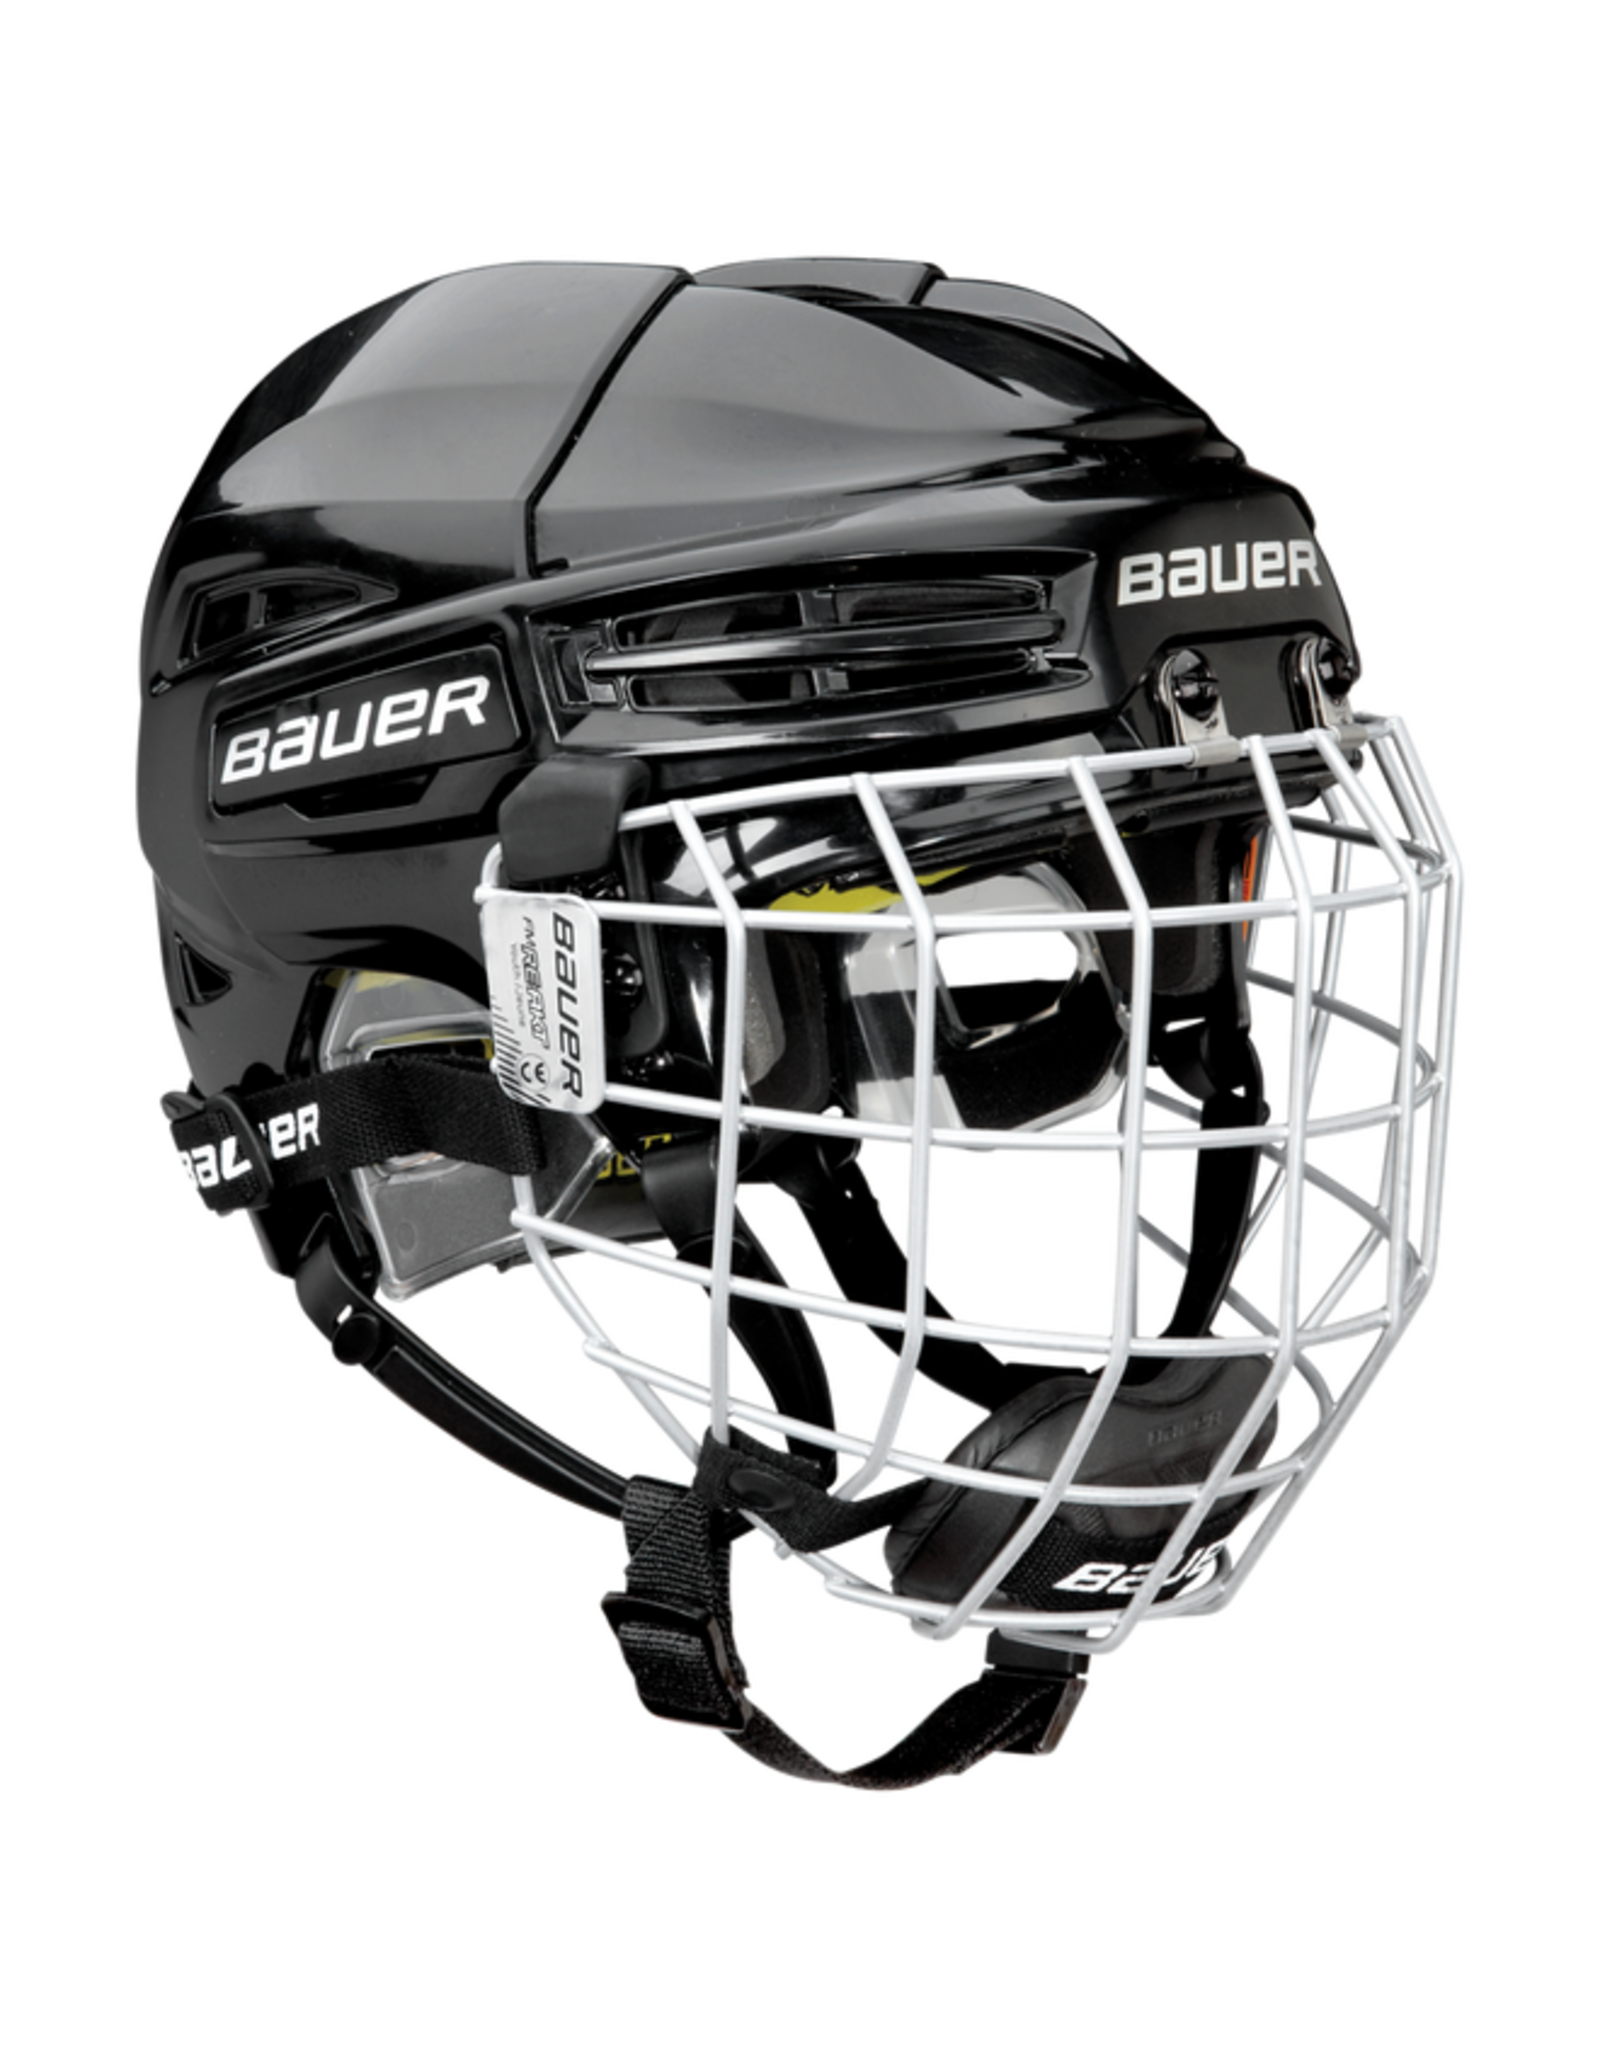 Bauer Hockey - Canada BAUER RE AKT 100 YOUTH HELMET COMBO